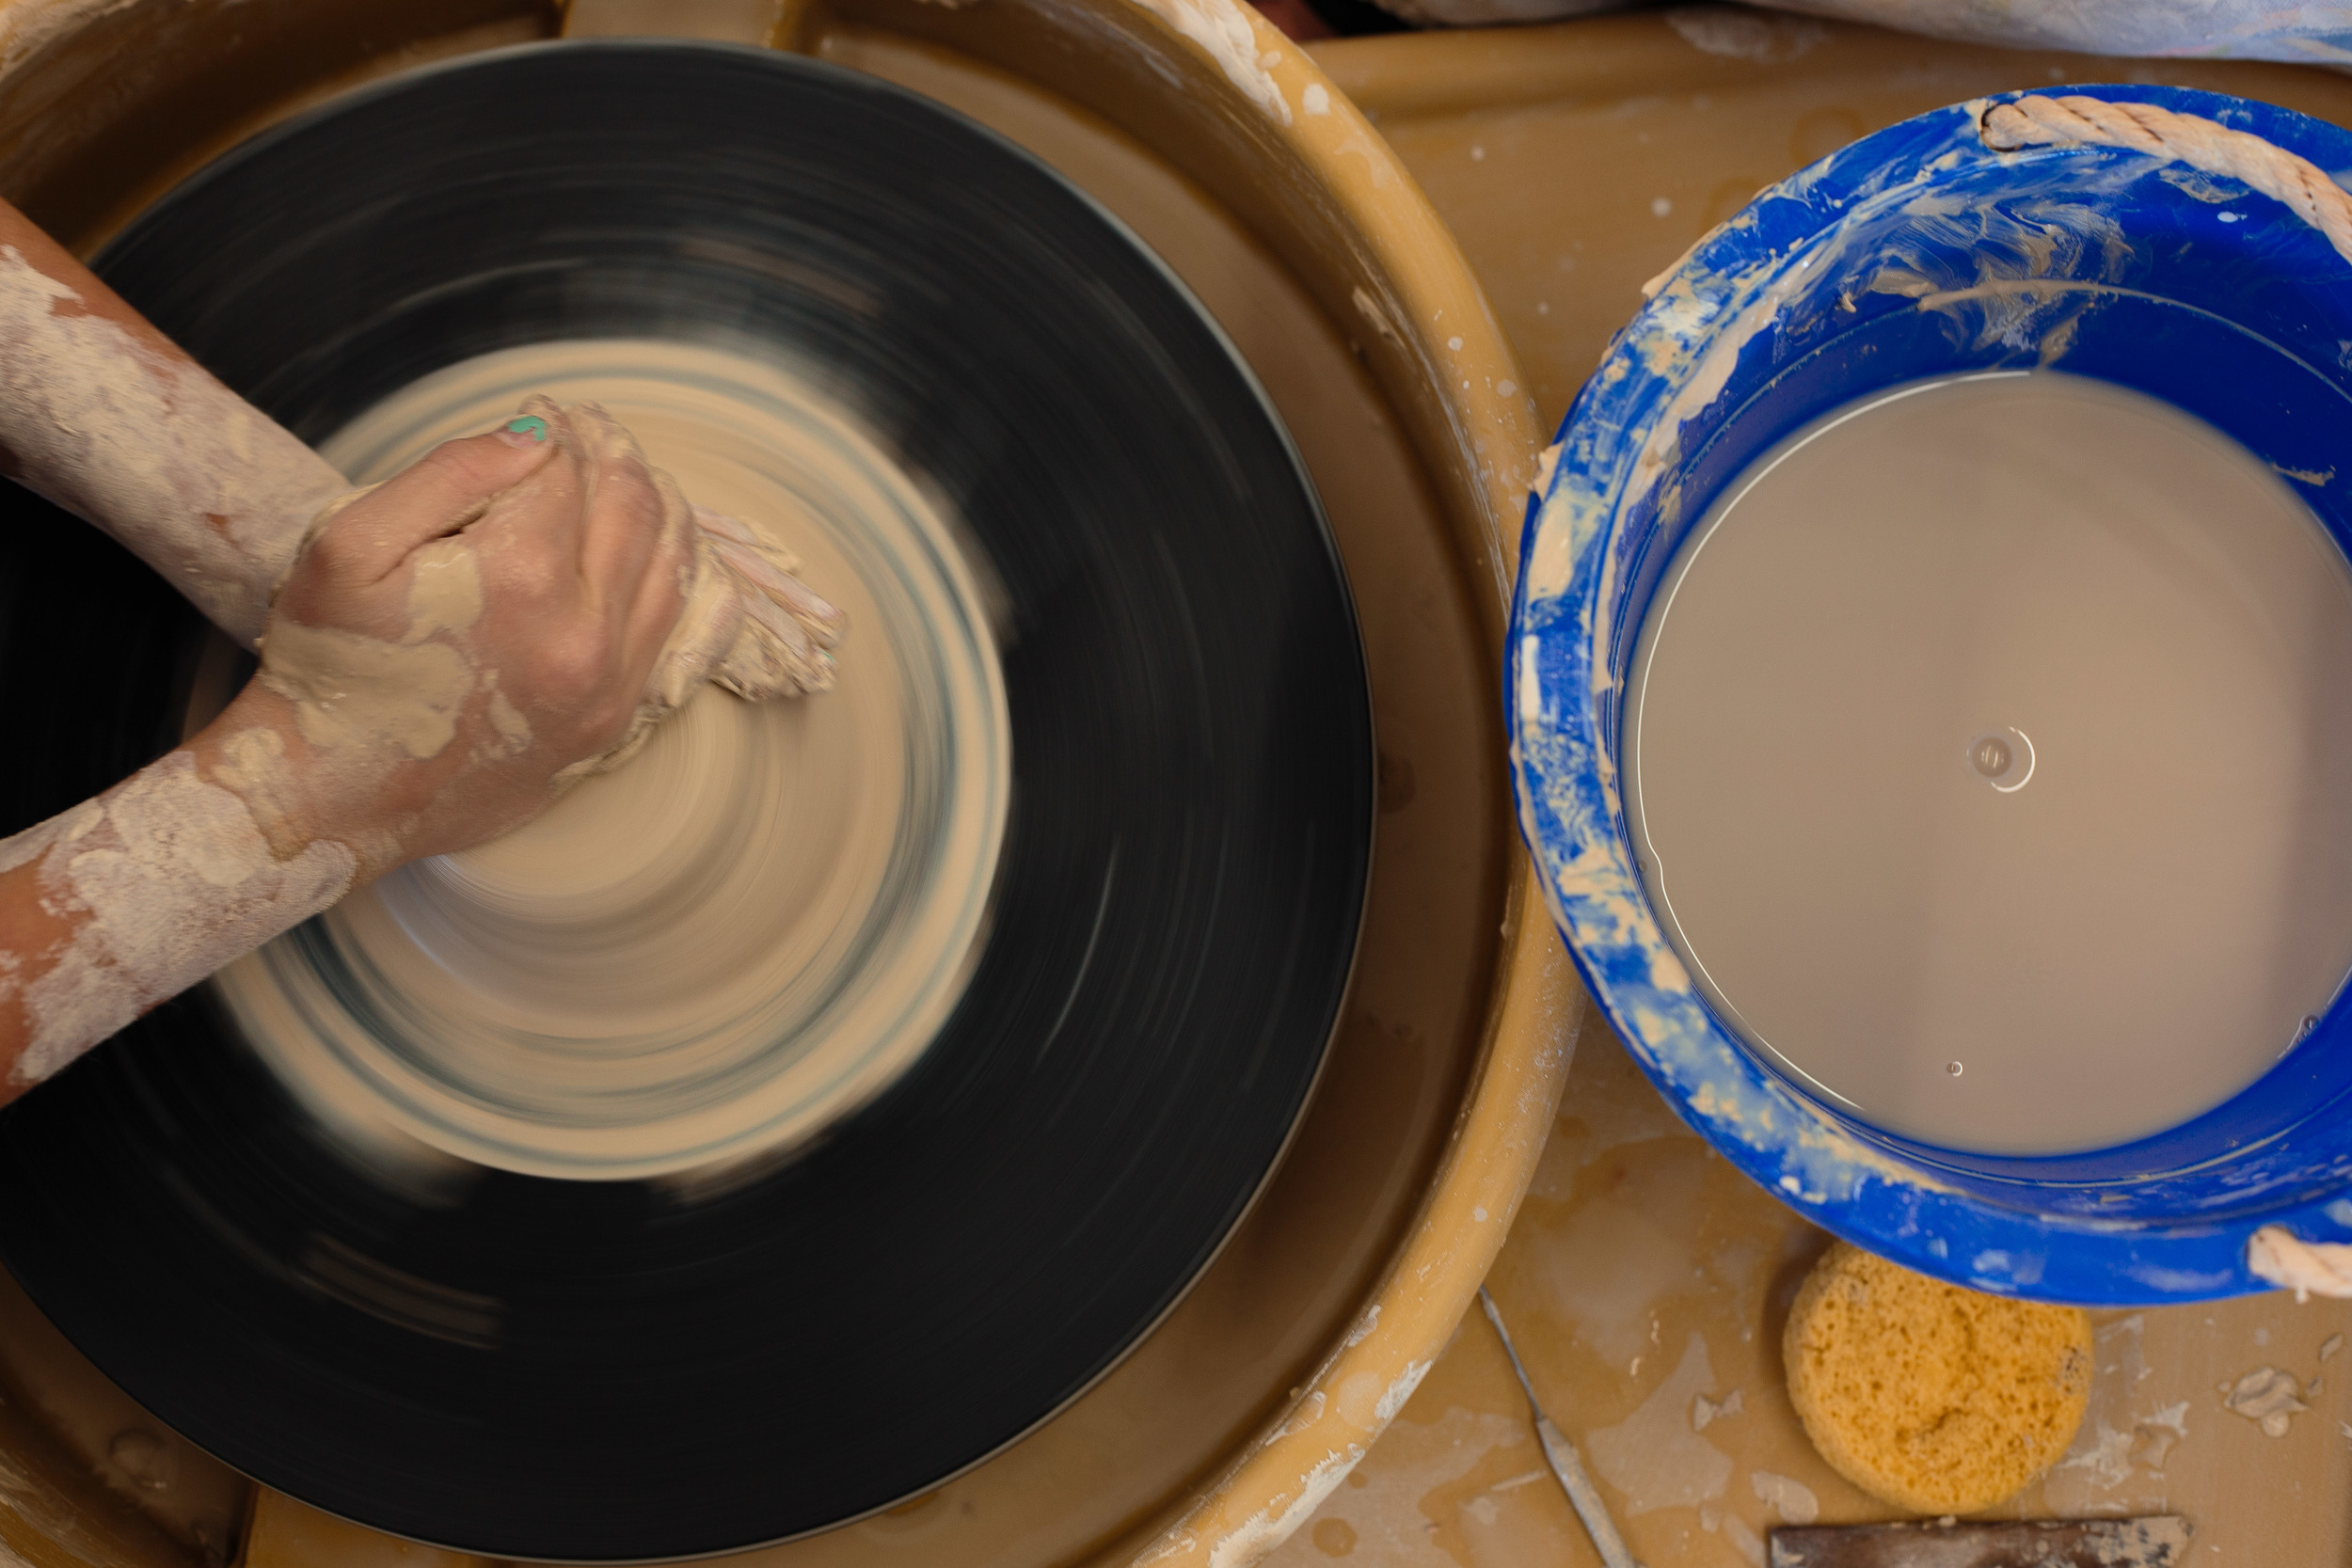 Artist Potter working pottery wheel throwing clay pot